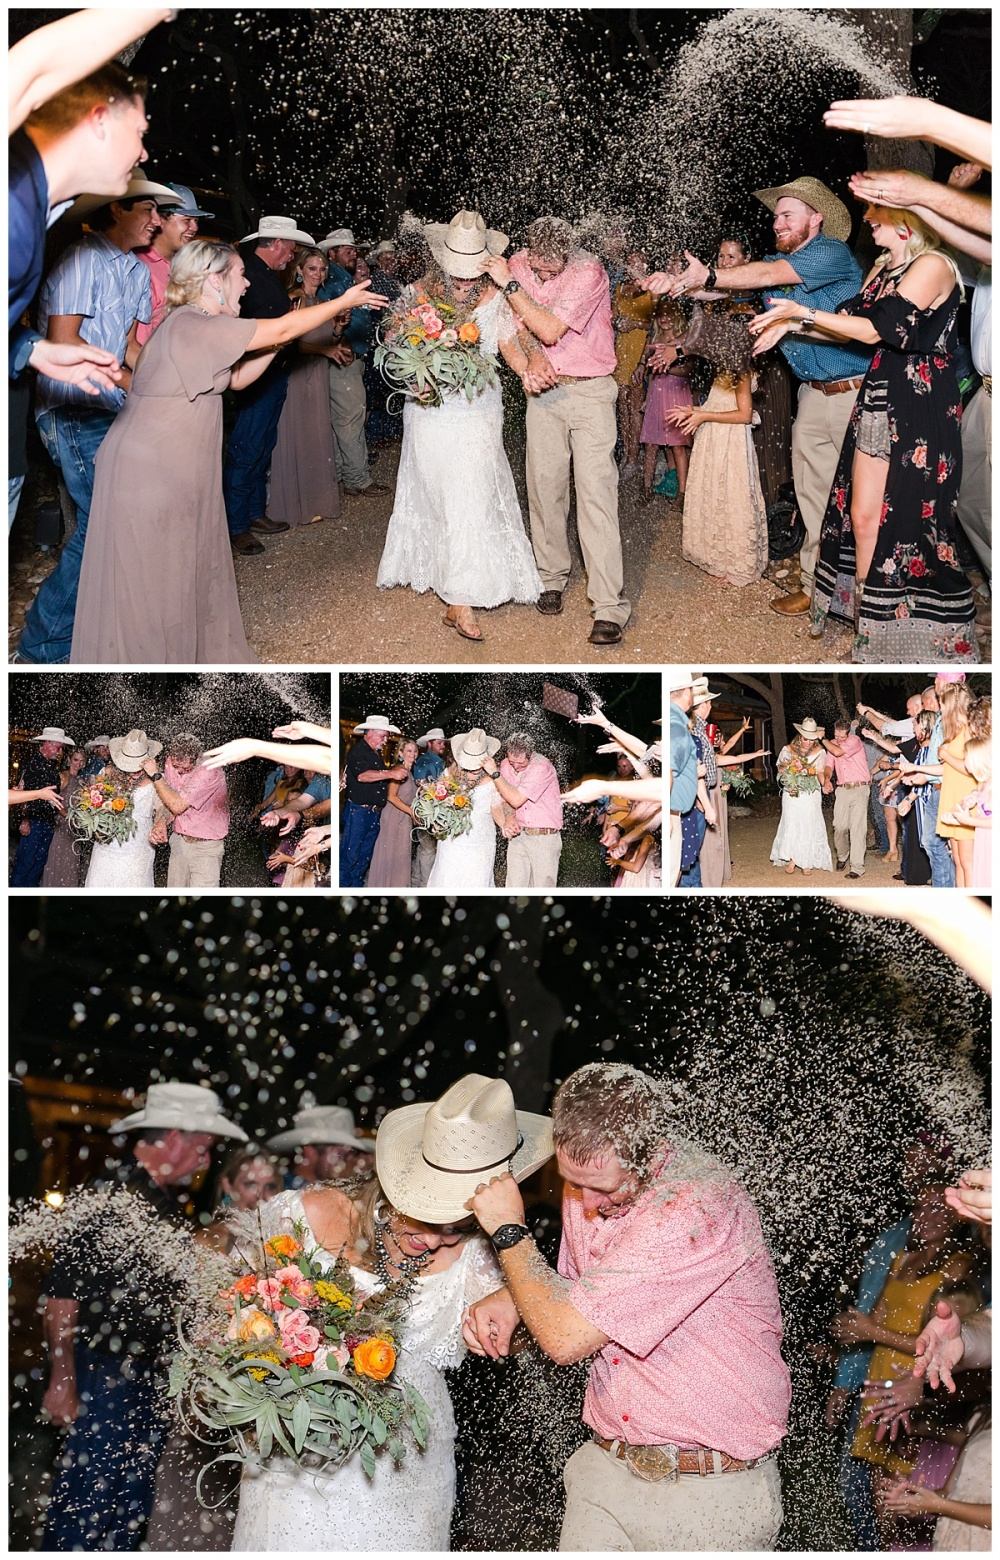 Texas-Wedding-Photographer-Braded-T-Ranch-Kendalia-Bride-Groom-Southwestern-Style-Carly-Barton-Photography-Vogt_0066.jpg